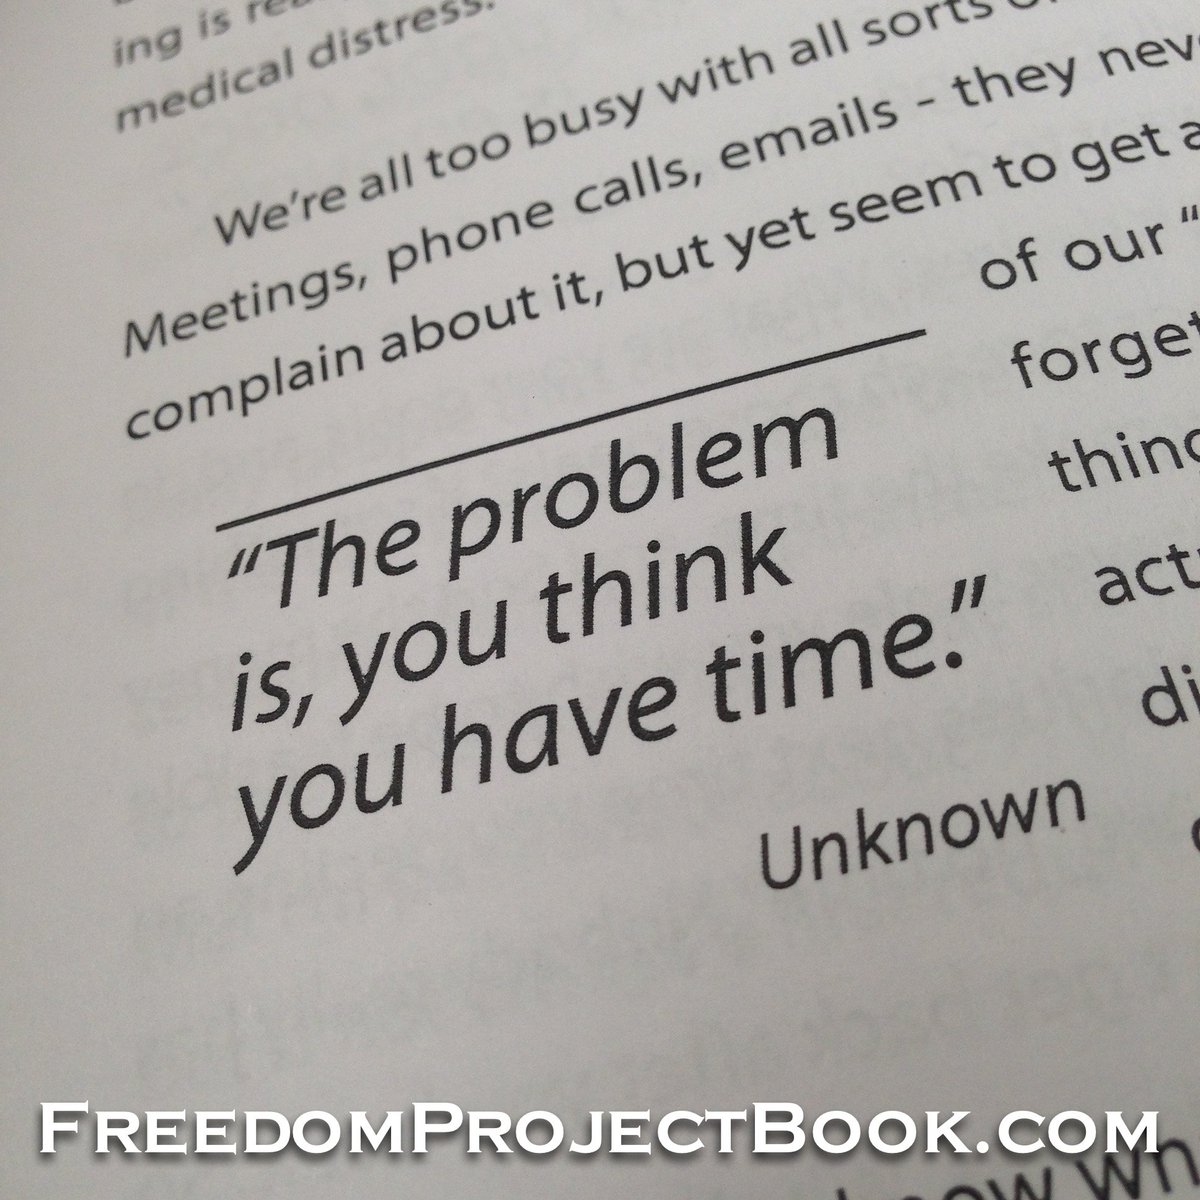 #quote from my book The Freedom Project #TFP #text <br>http://pic.twitter.com/EP1pEKmHtQ